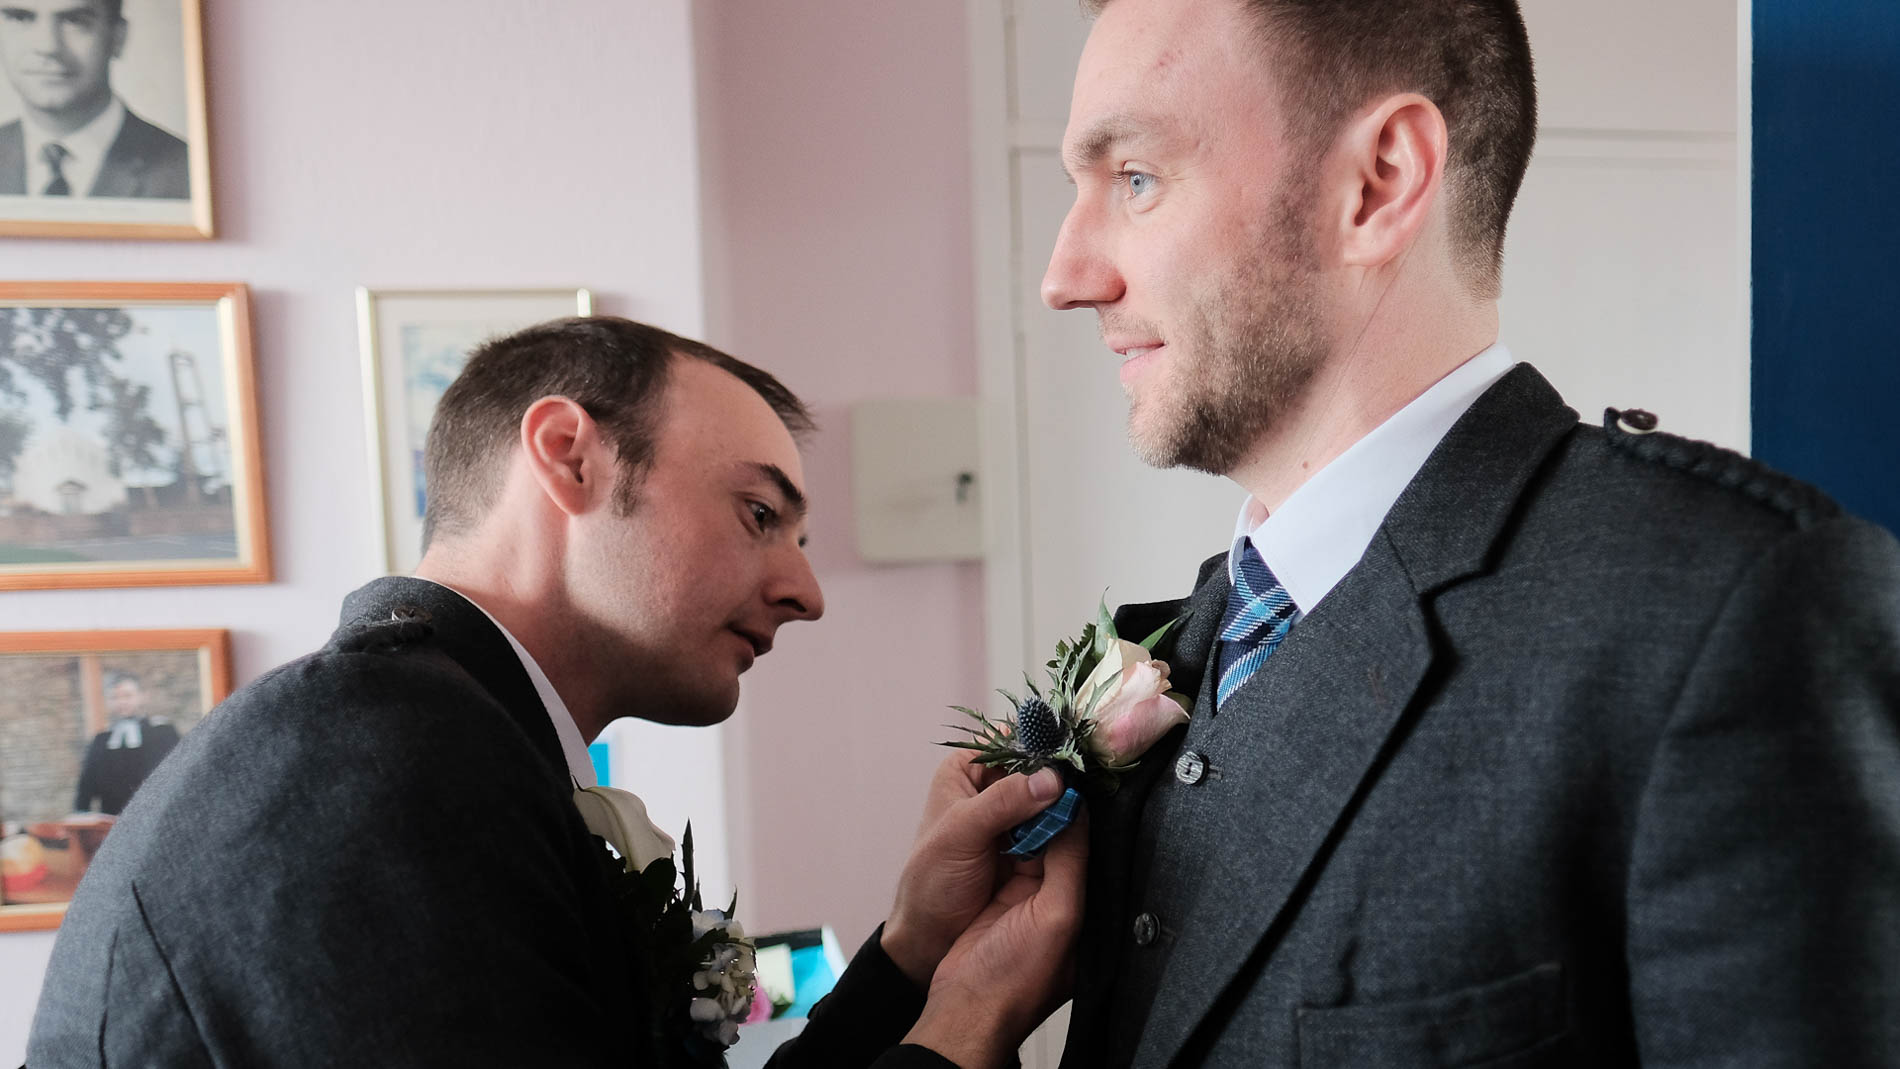 Colour photograph of the groom fixing a buttonhole flower onto the jacket of his best man at his wedding